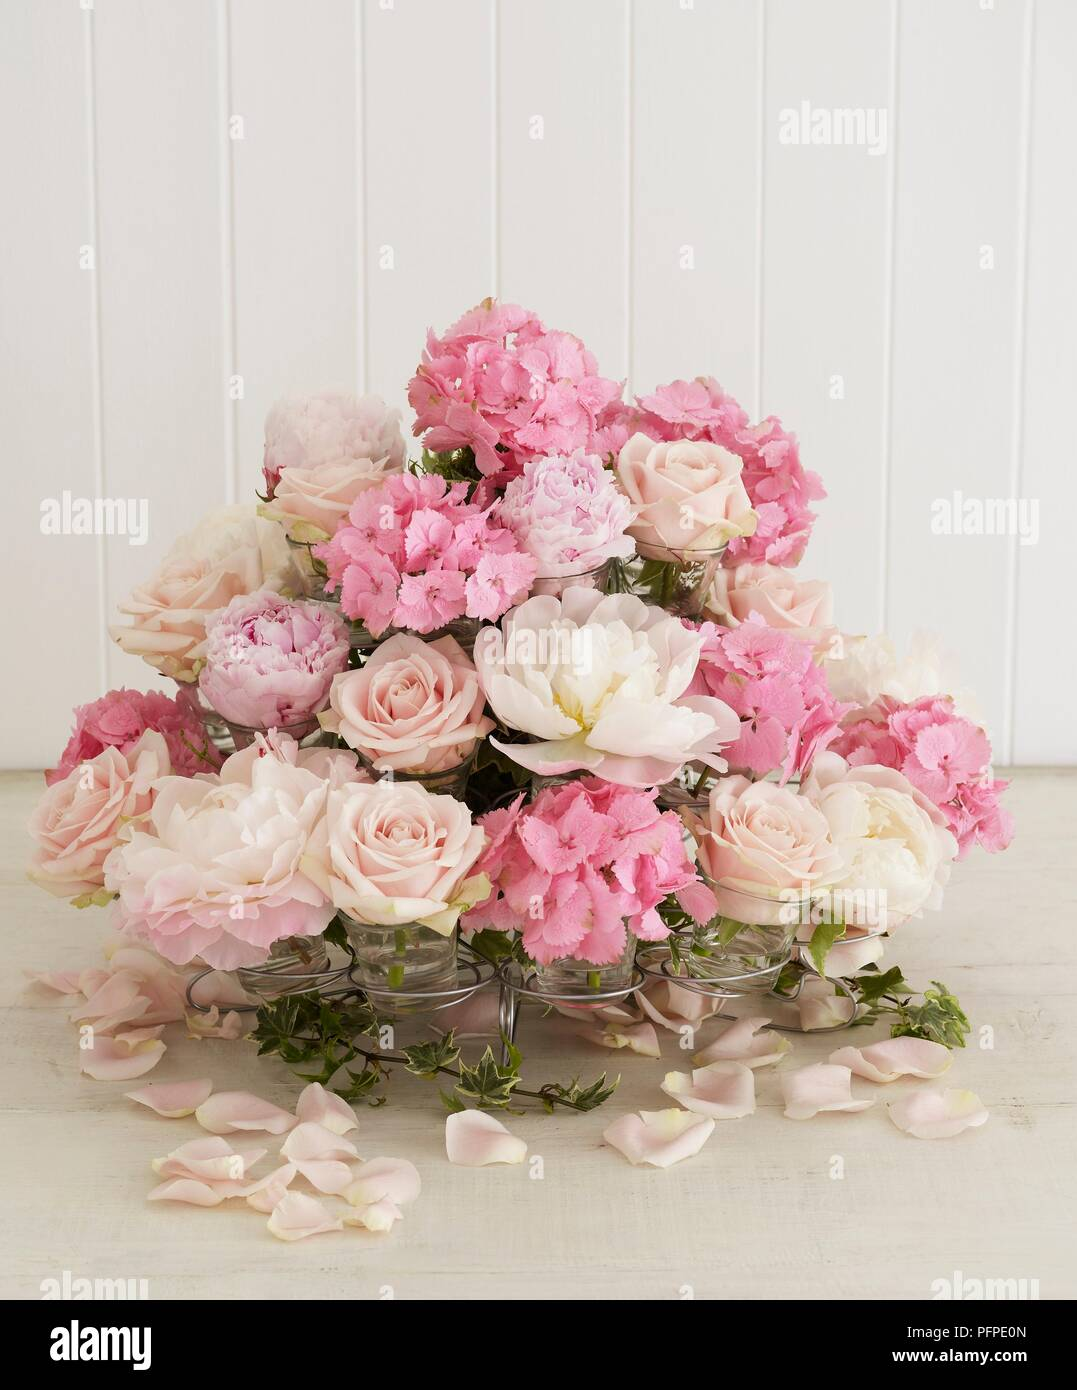 Pink And White Flower Arrangement Of Hydrangeas Roses Peonies And